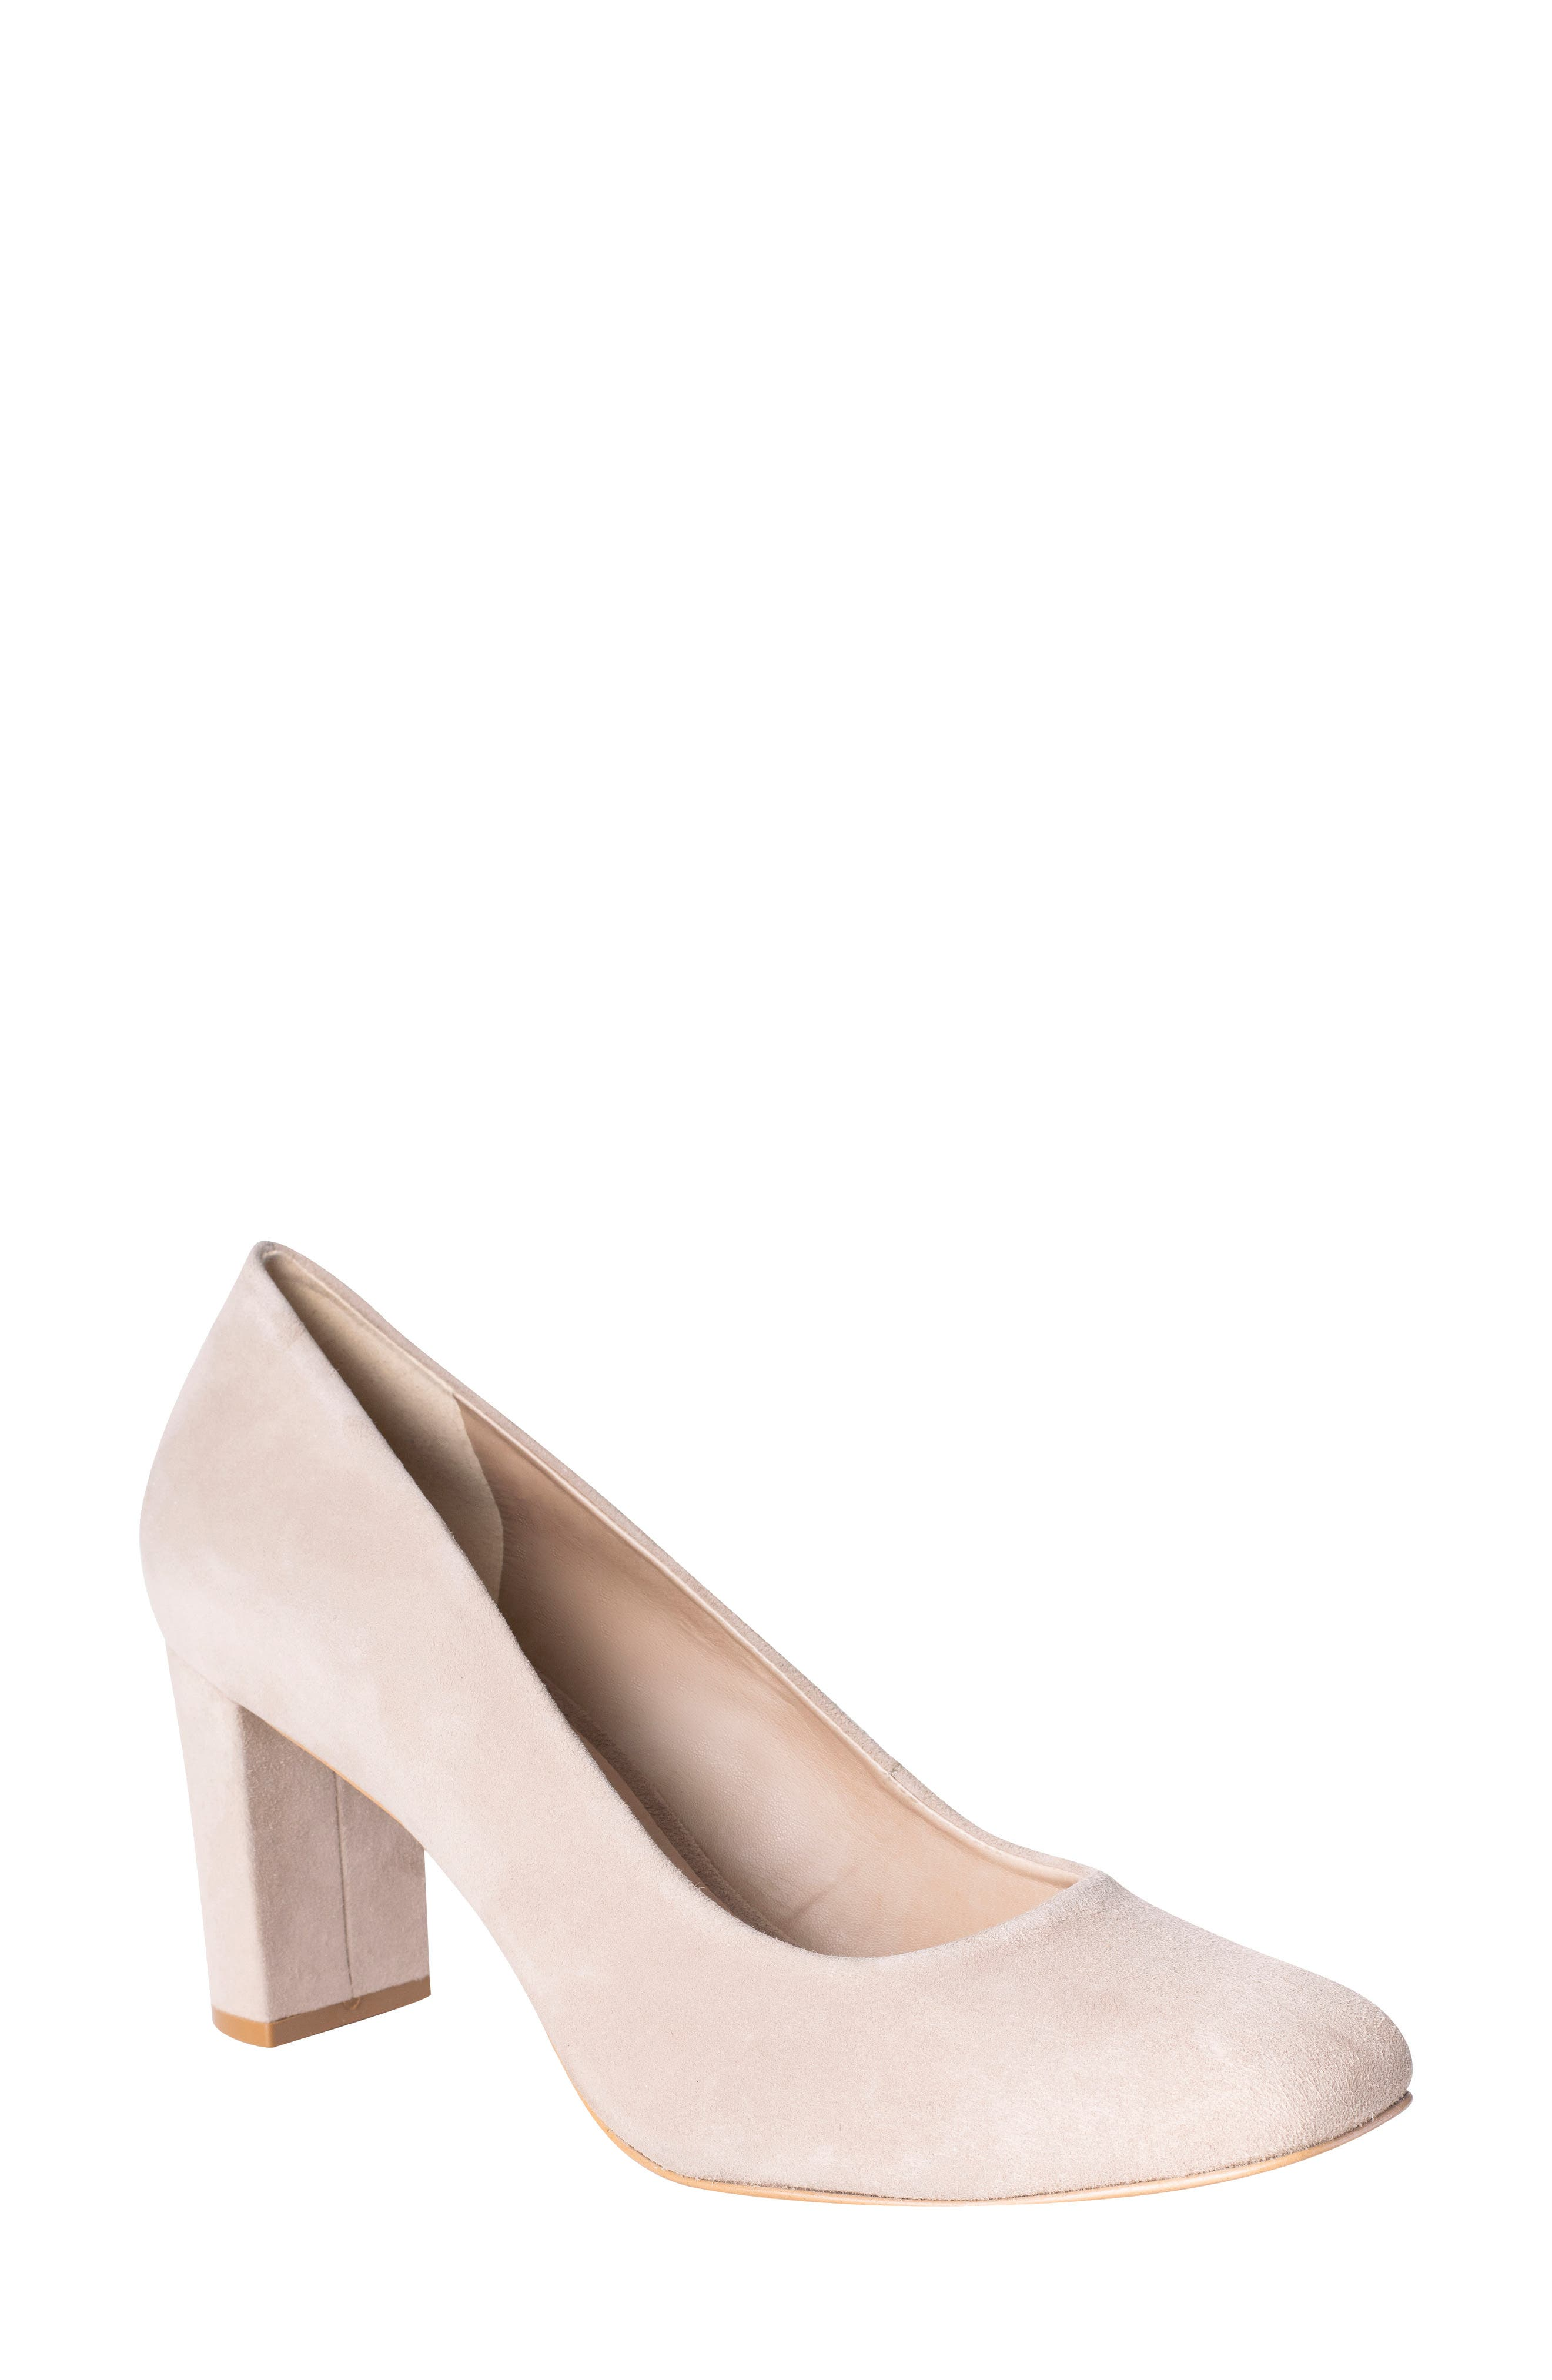 UKIES Brook Block Heel Pump, Main, color, MUSHROOM SUEDE